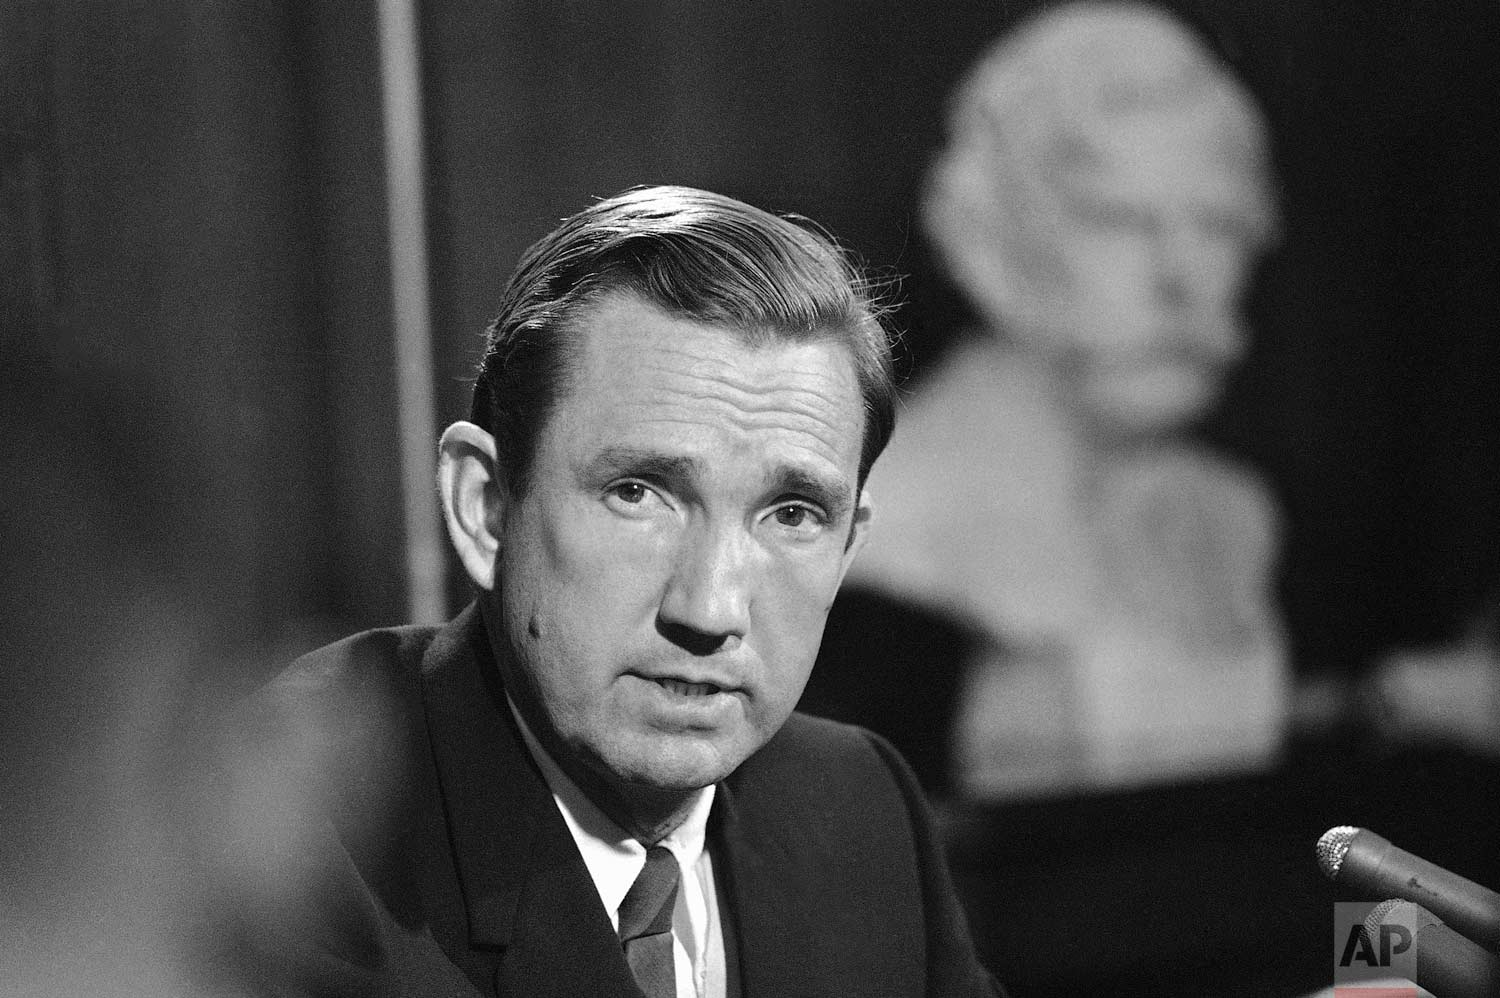 Attorney General Ramsey Clark tells a news conference in Washington on June 5, 1968 that the FBI is investigating every possible angle in the shooting of Senator Robert F. Kennedy including the possibility of conspiracy. (AP Photo)